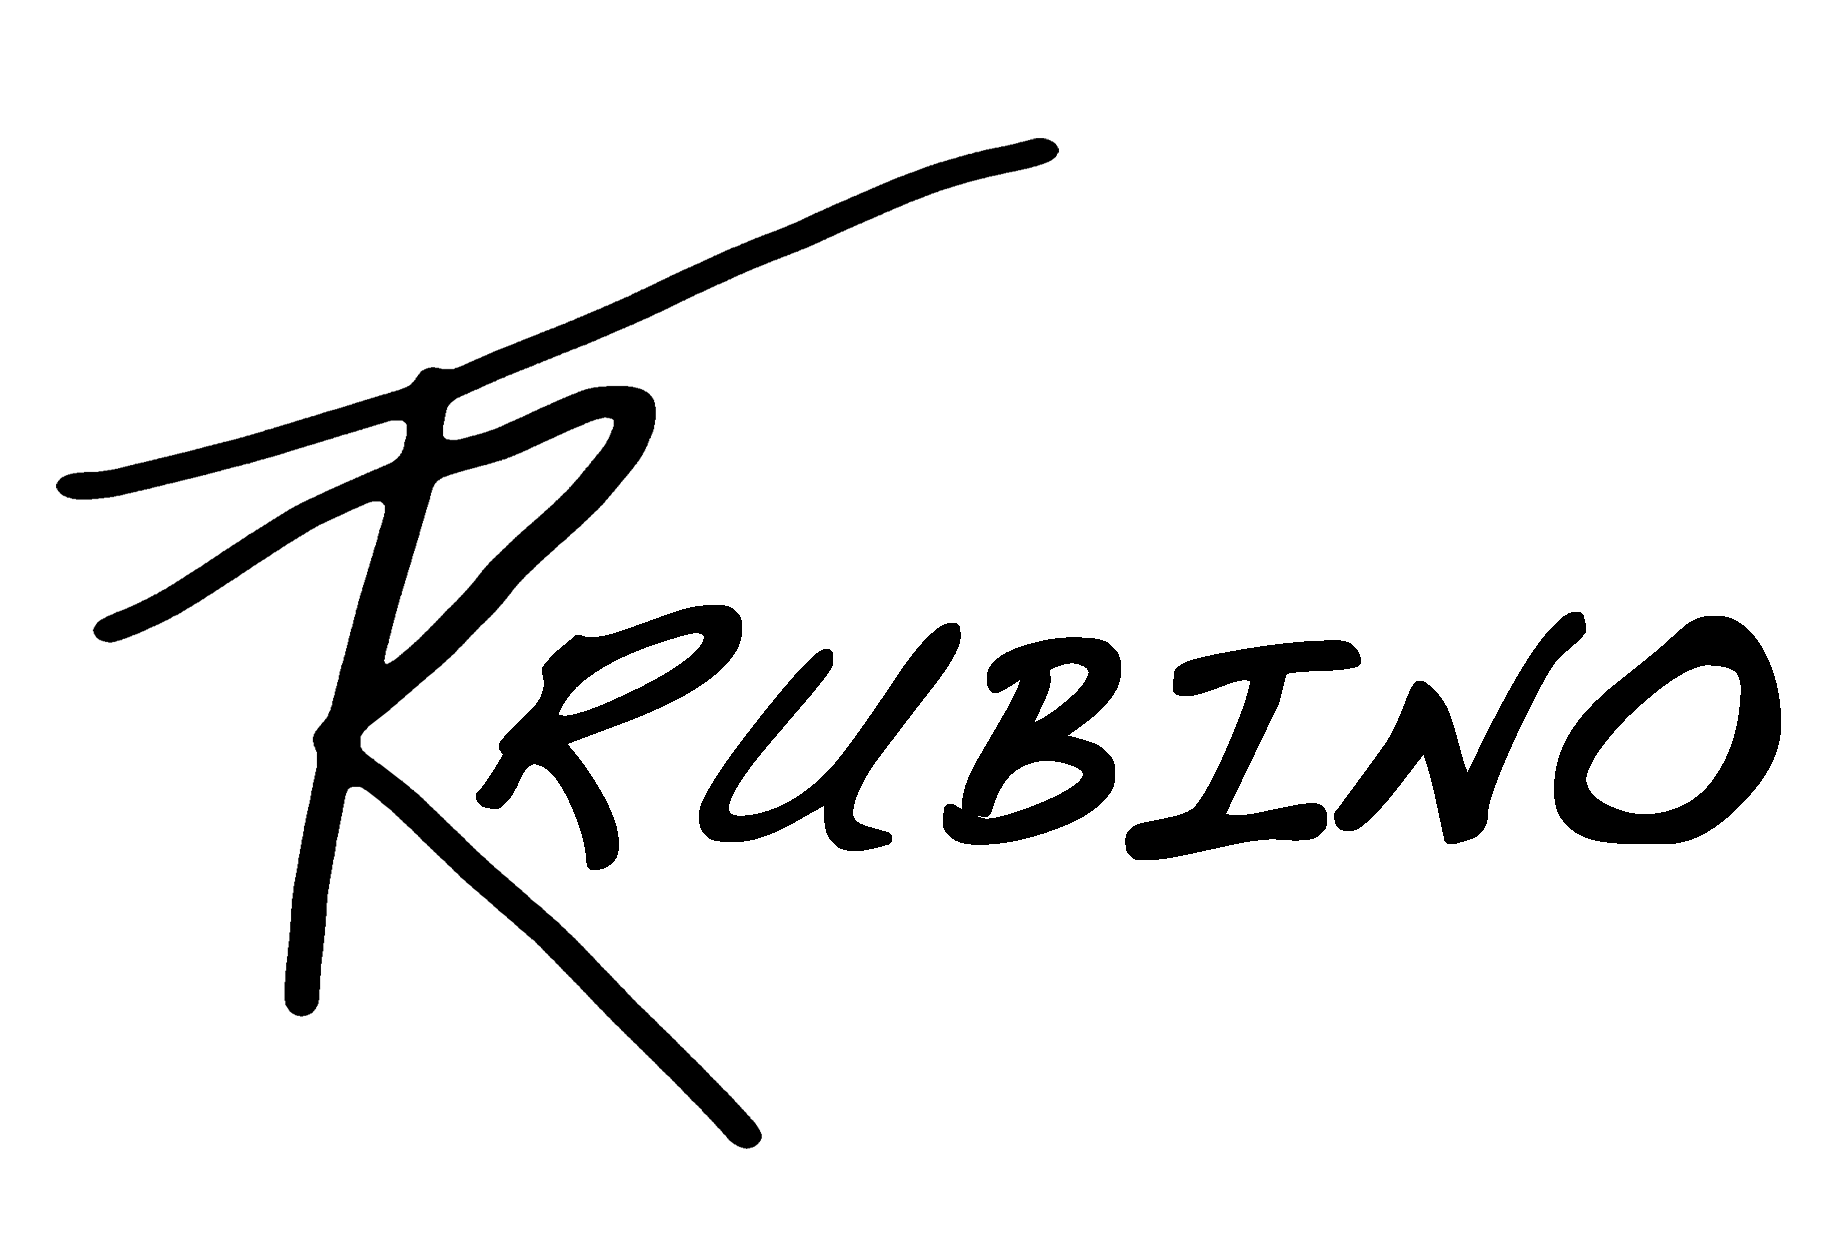 Tony Rubino's Signature